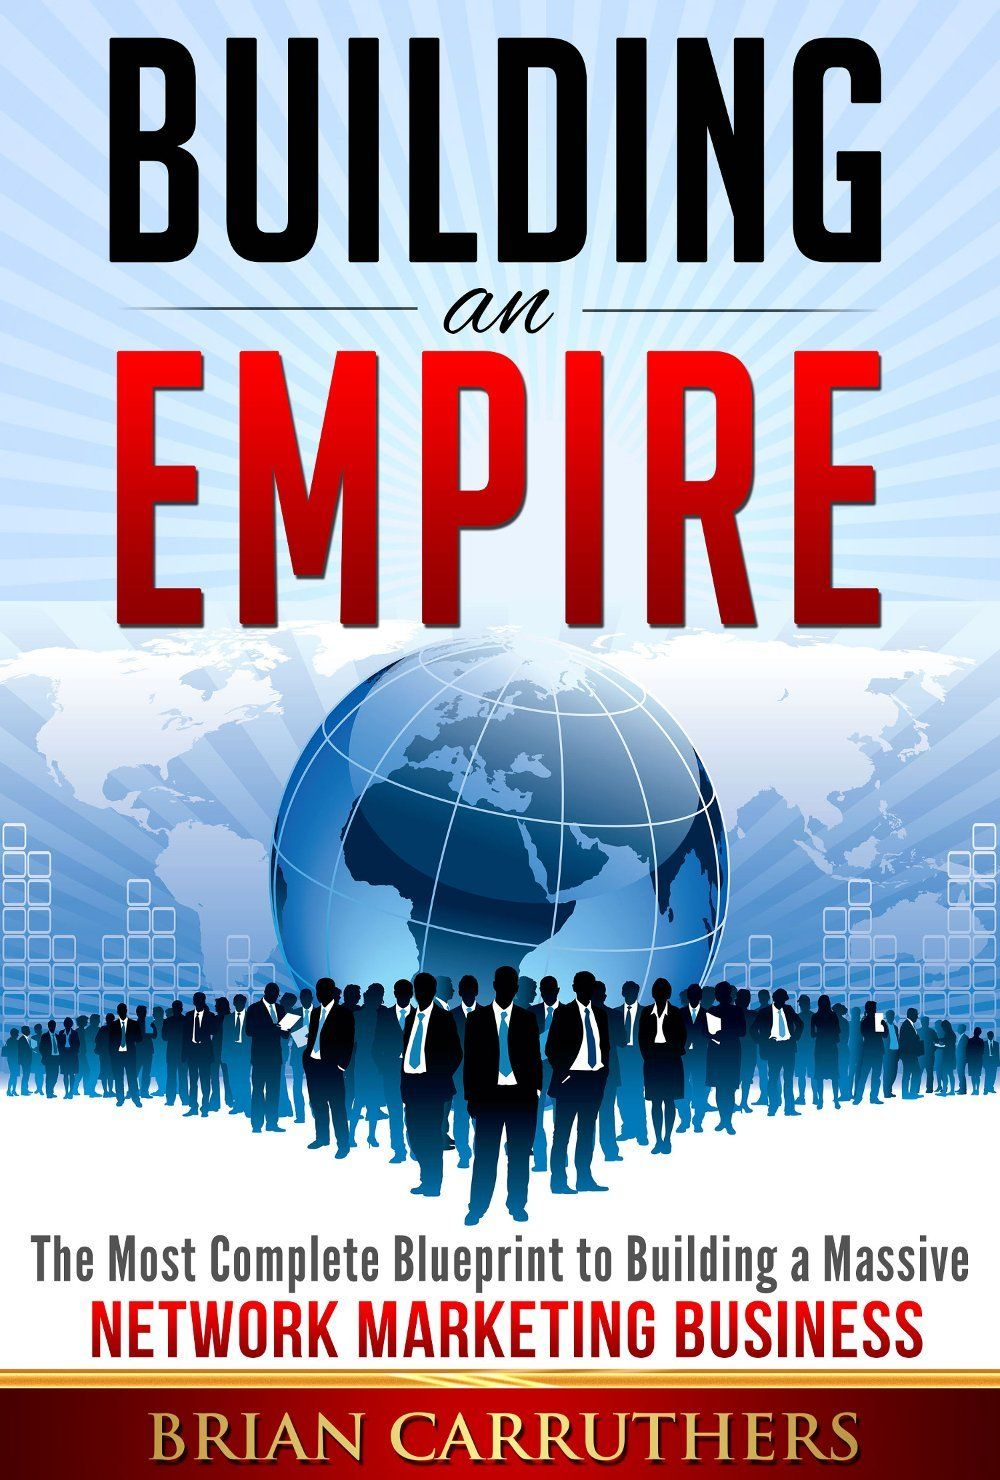 Building an empirethe most complete blueprint to building a massive its an actual action plan building an empire the most complete blueprint to building a massive network marketing business by brian carruthers malvernweather Images